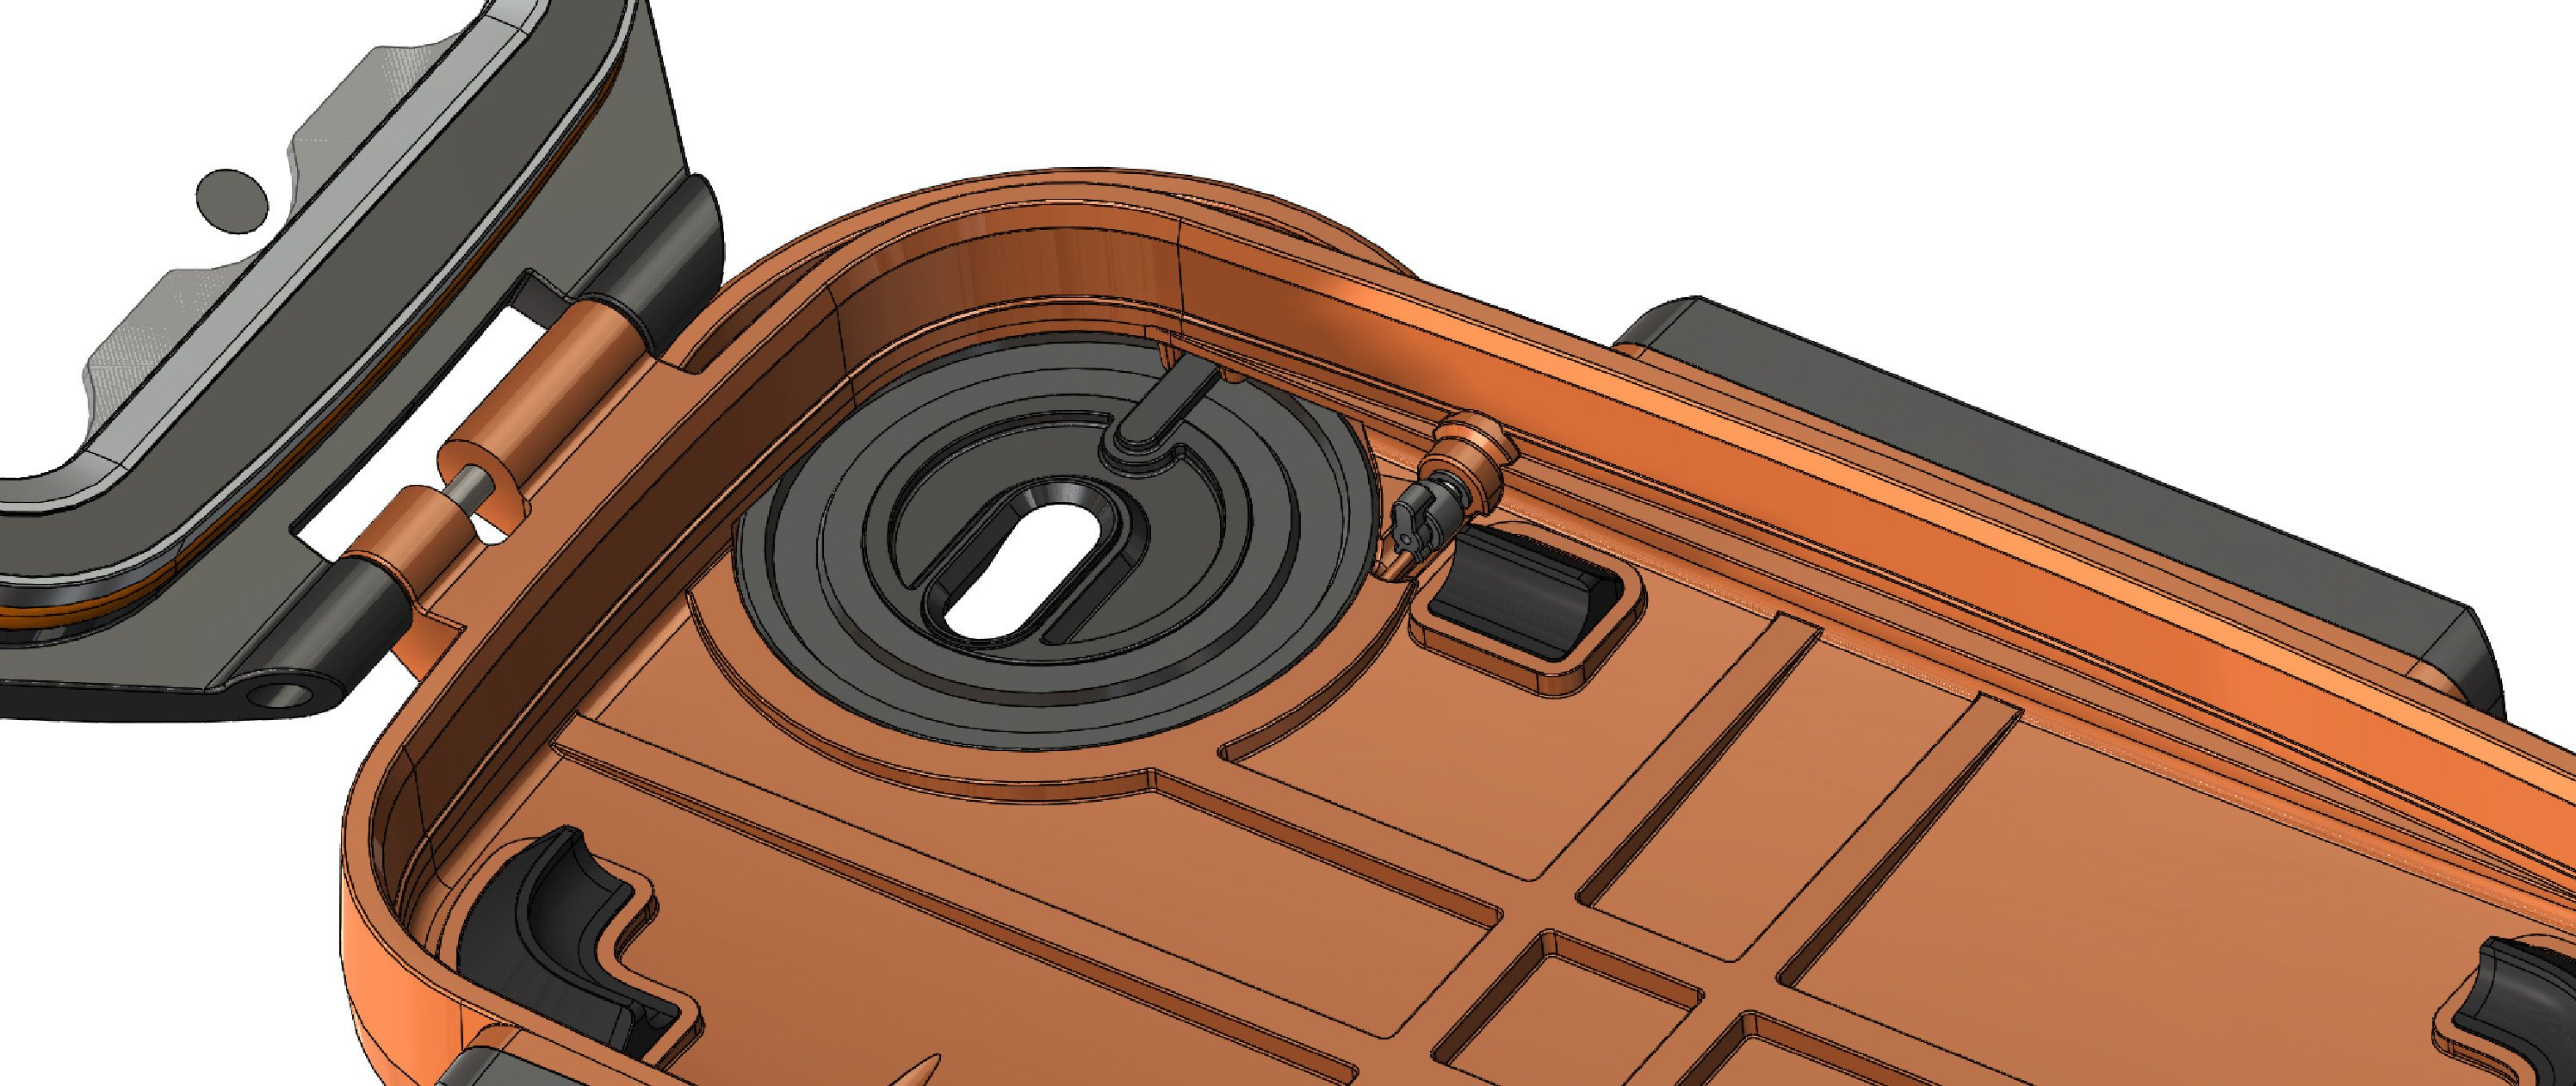 The AxisGO 7+ water housing has a power button and allows use of both lenses on the iPhone 7 plus